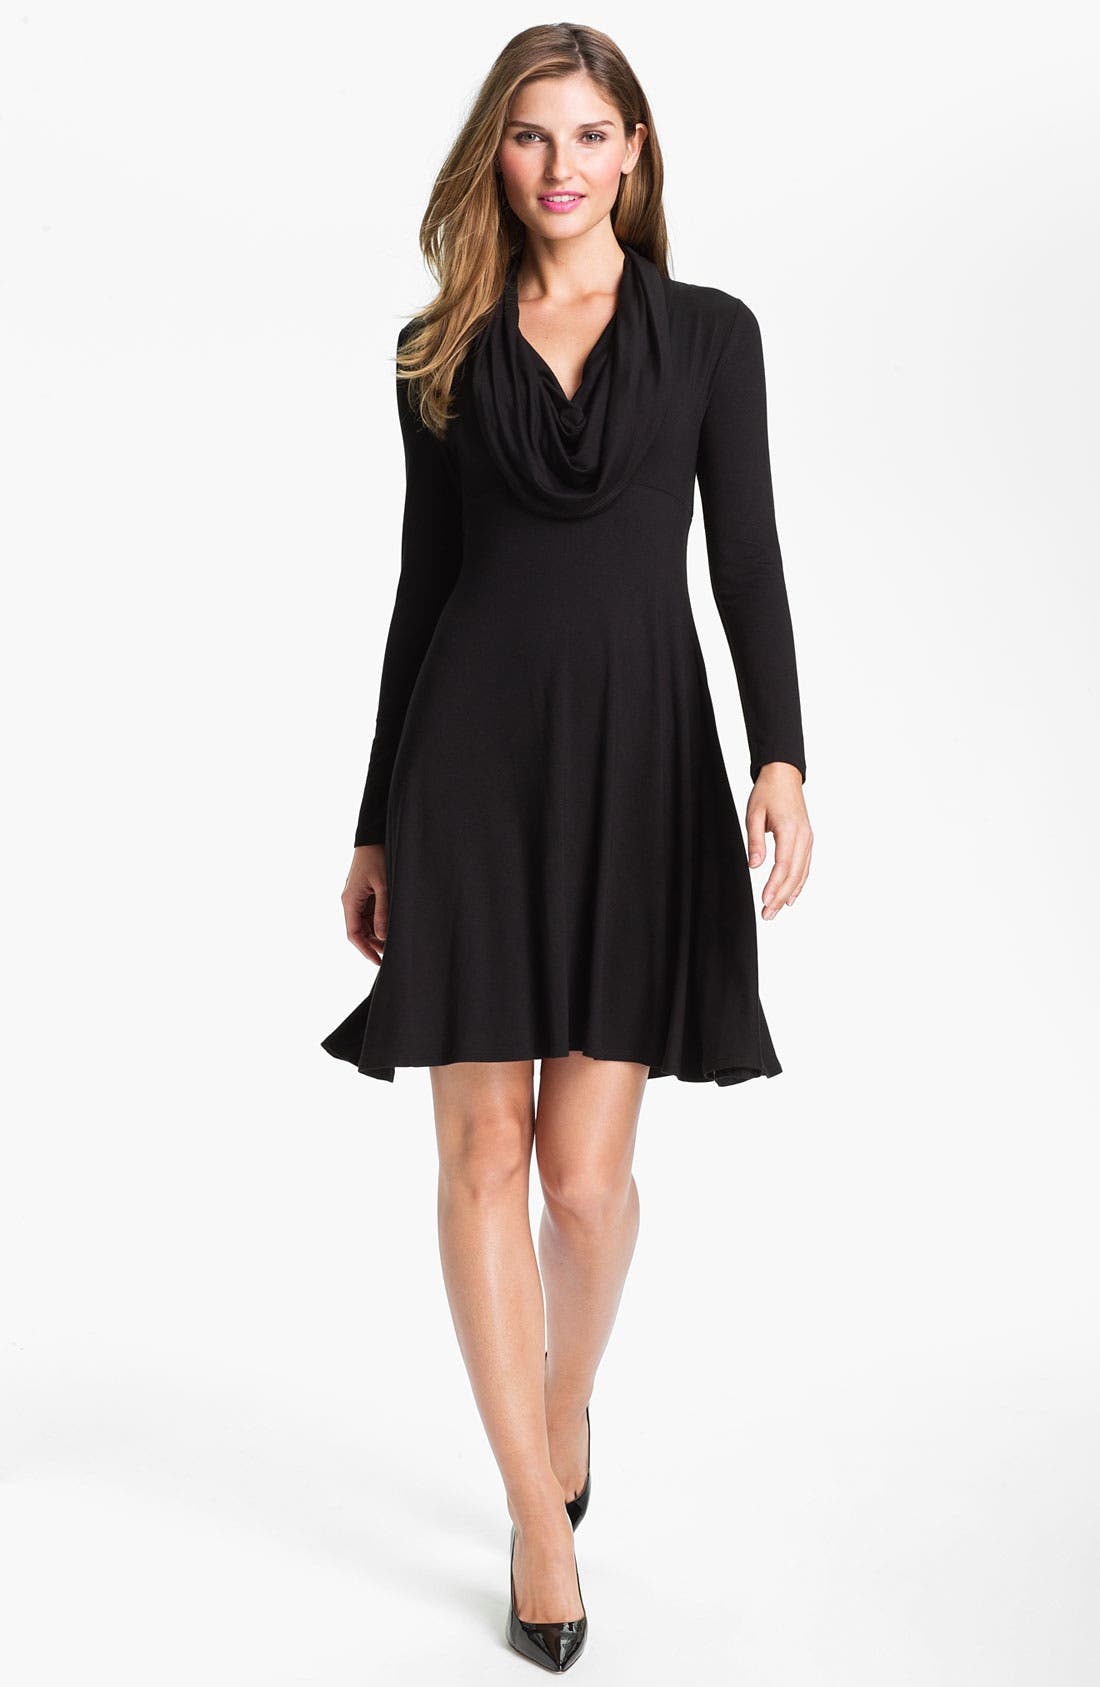 Alternate Image 1 Selected - Karen Kane Drape Neck Dress (Online Exclusive)